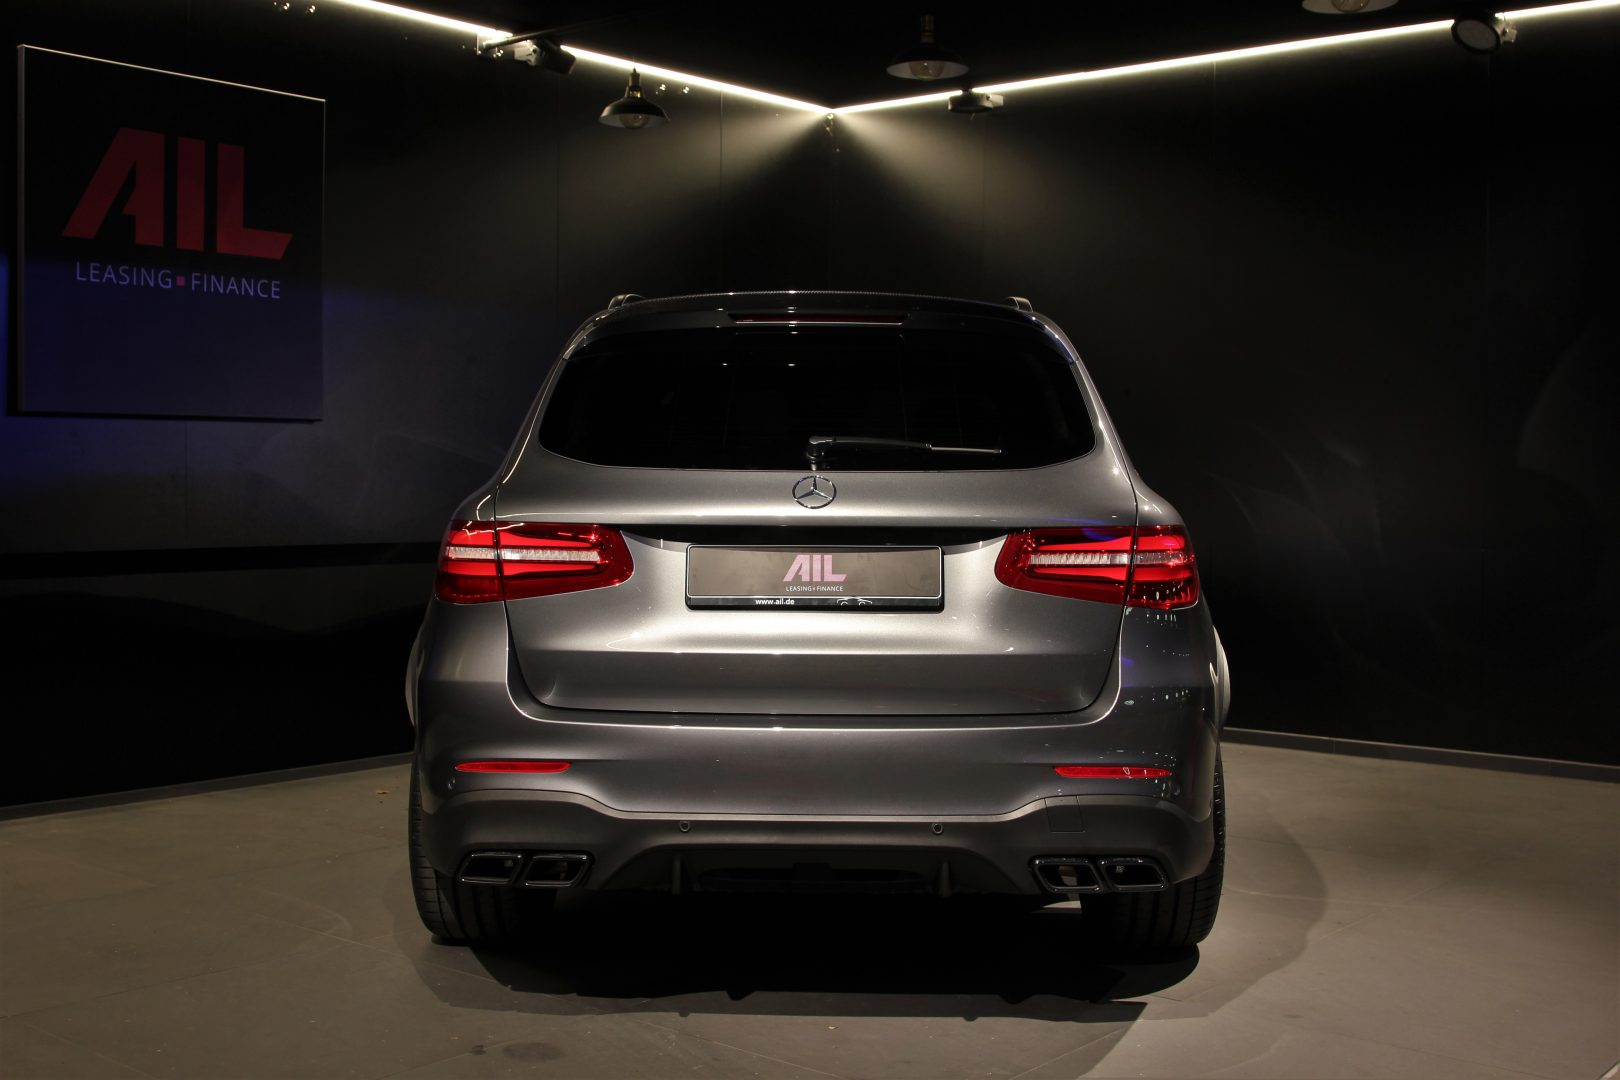 AIL Mercedes-Benz GLC 63 S AMG Edition 1 / CARBON / AMG TRACK 6